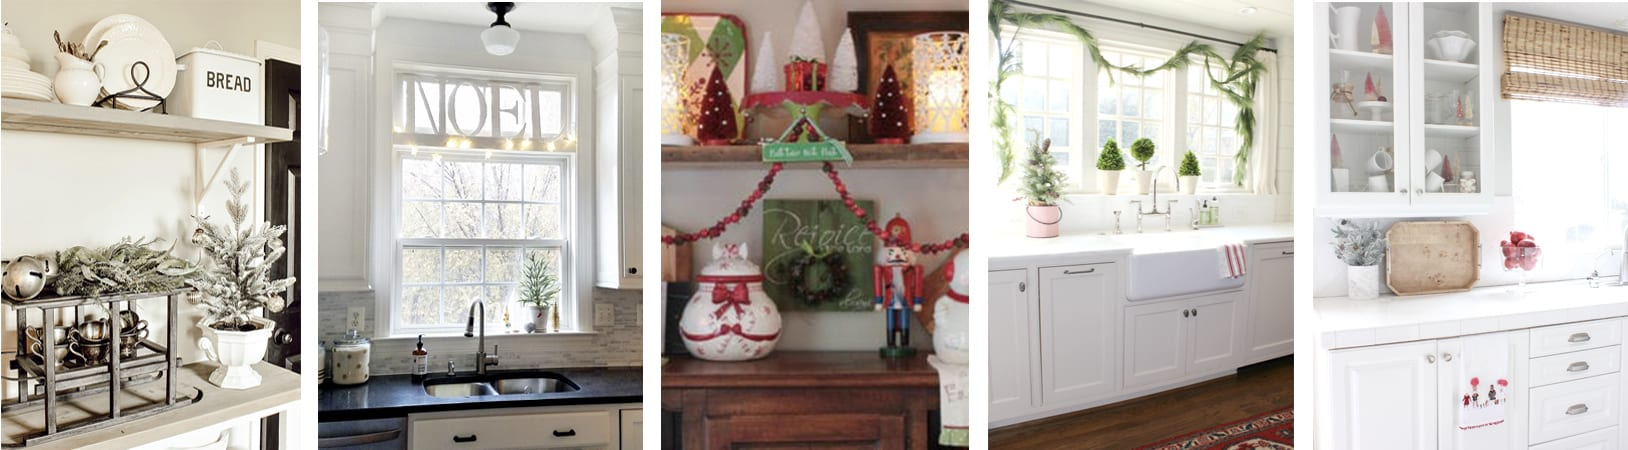 Tuesday christmas kitchen collage